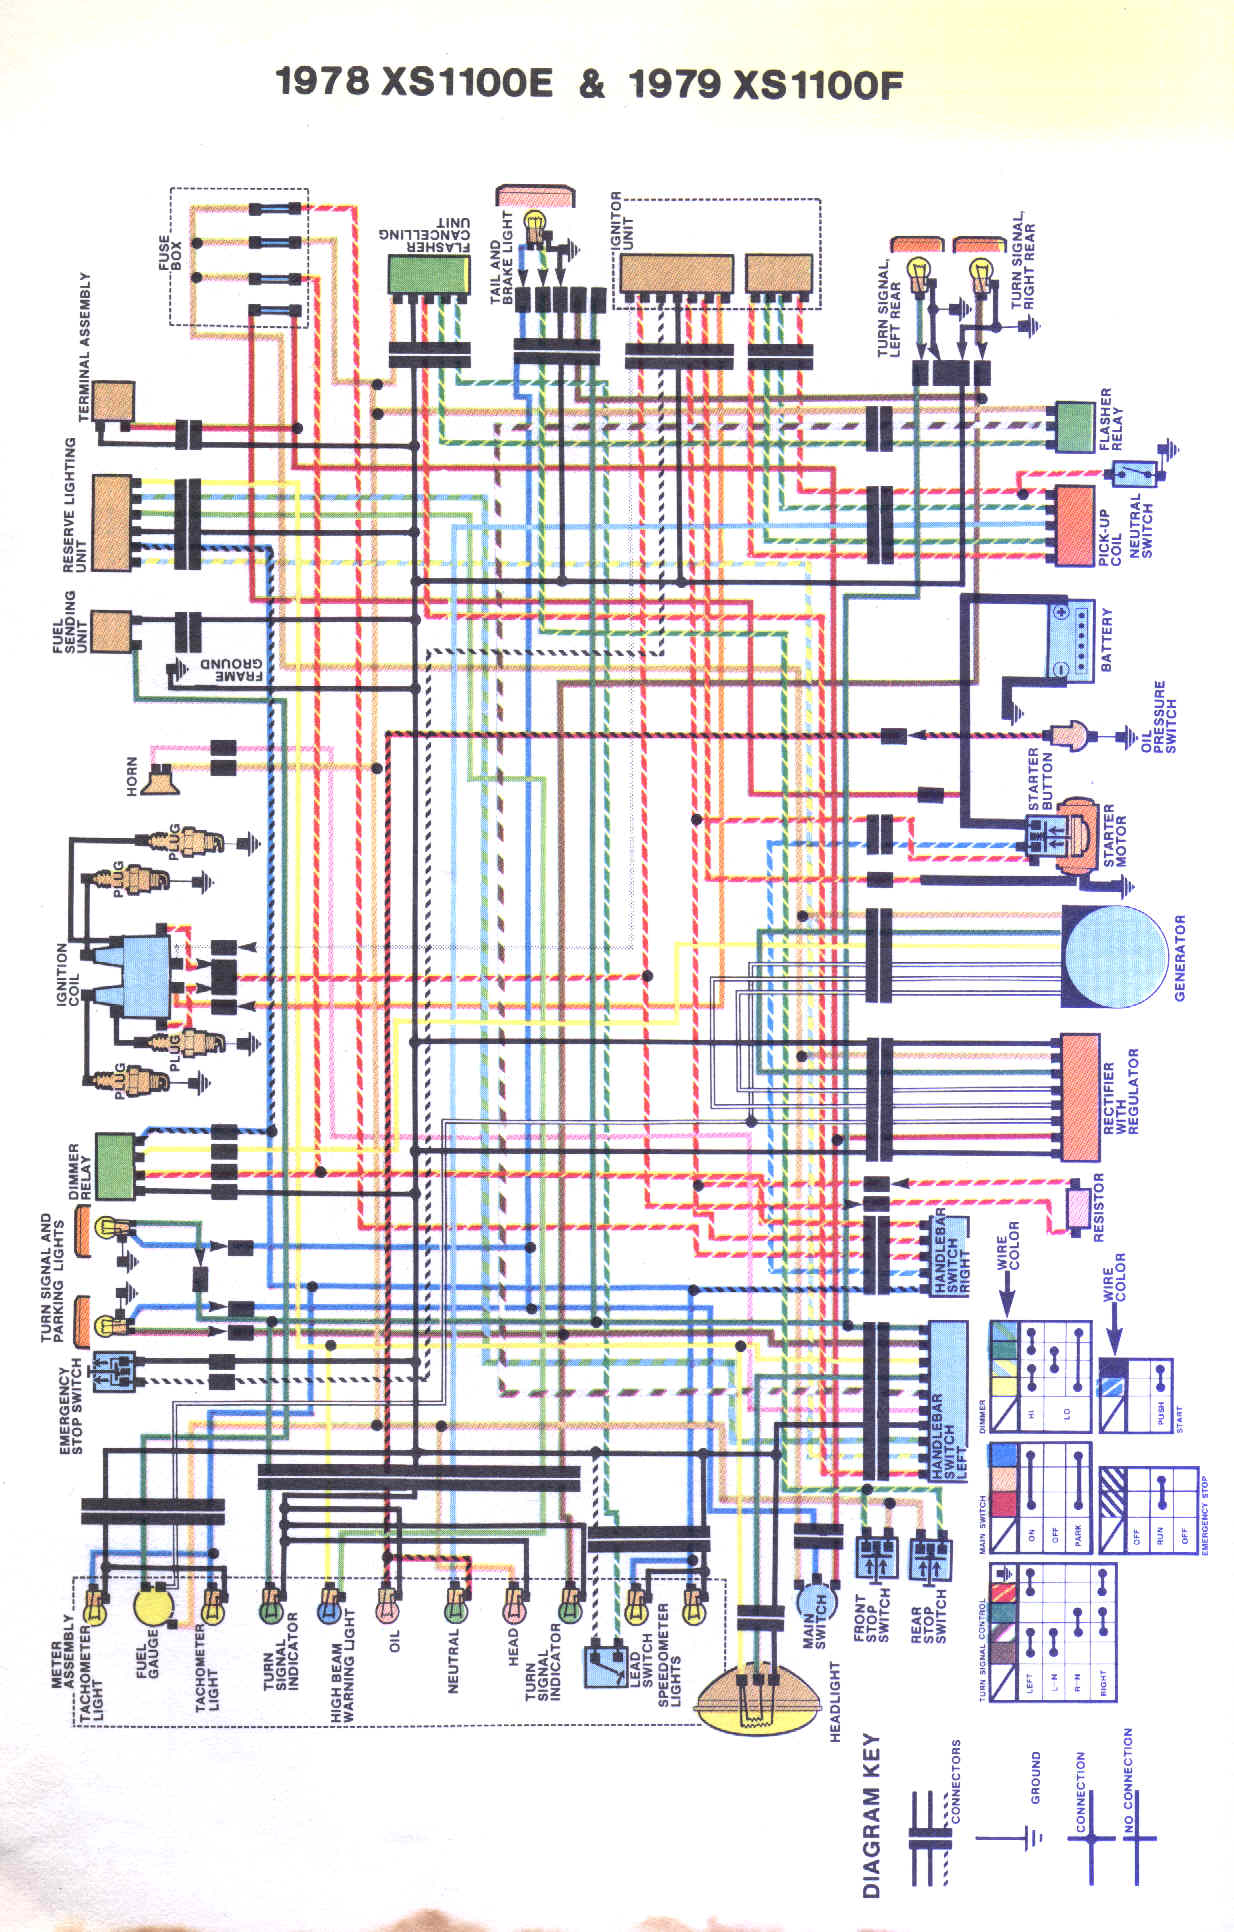 hight resolution of 79 trans am wiring diagram wiring diagram 1972 pontiac trans am wiring diagram